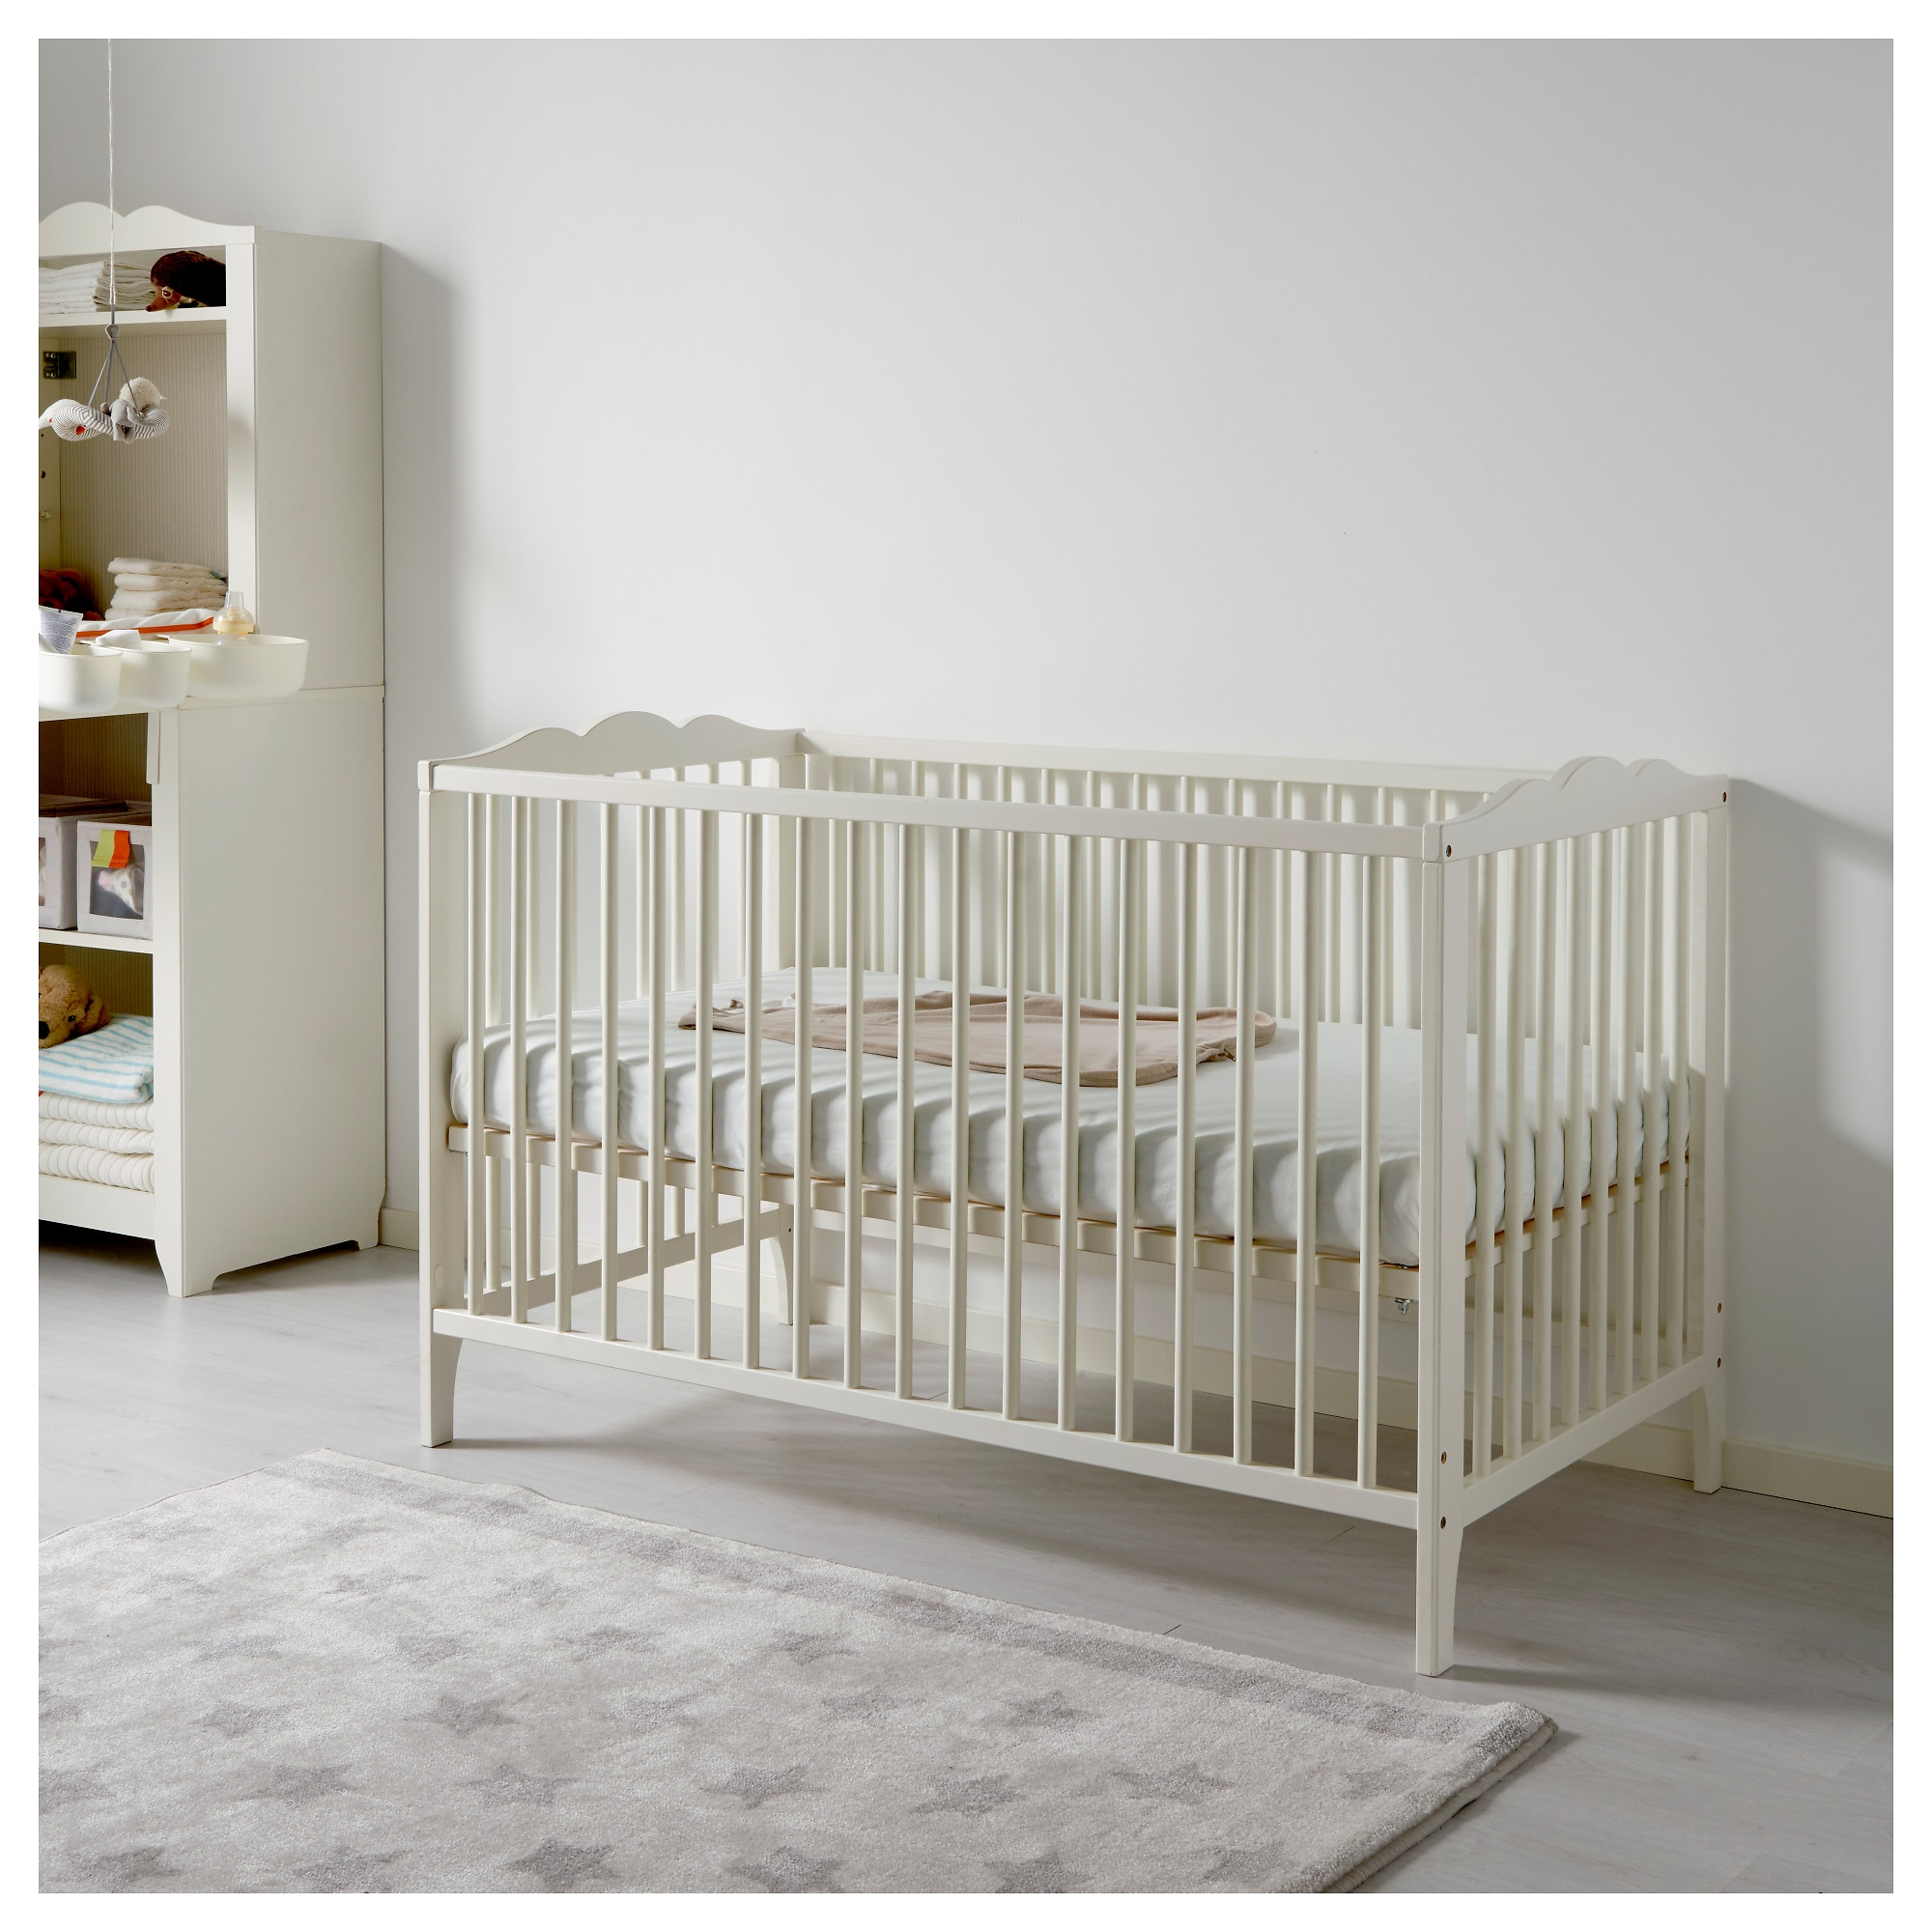 Baby cribs york region - Baby Cribs York Region 45